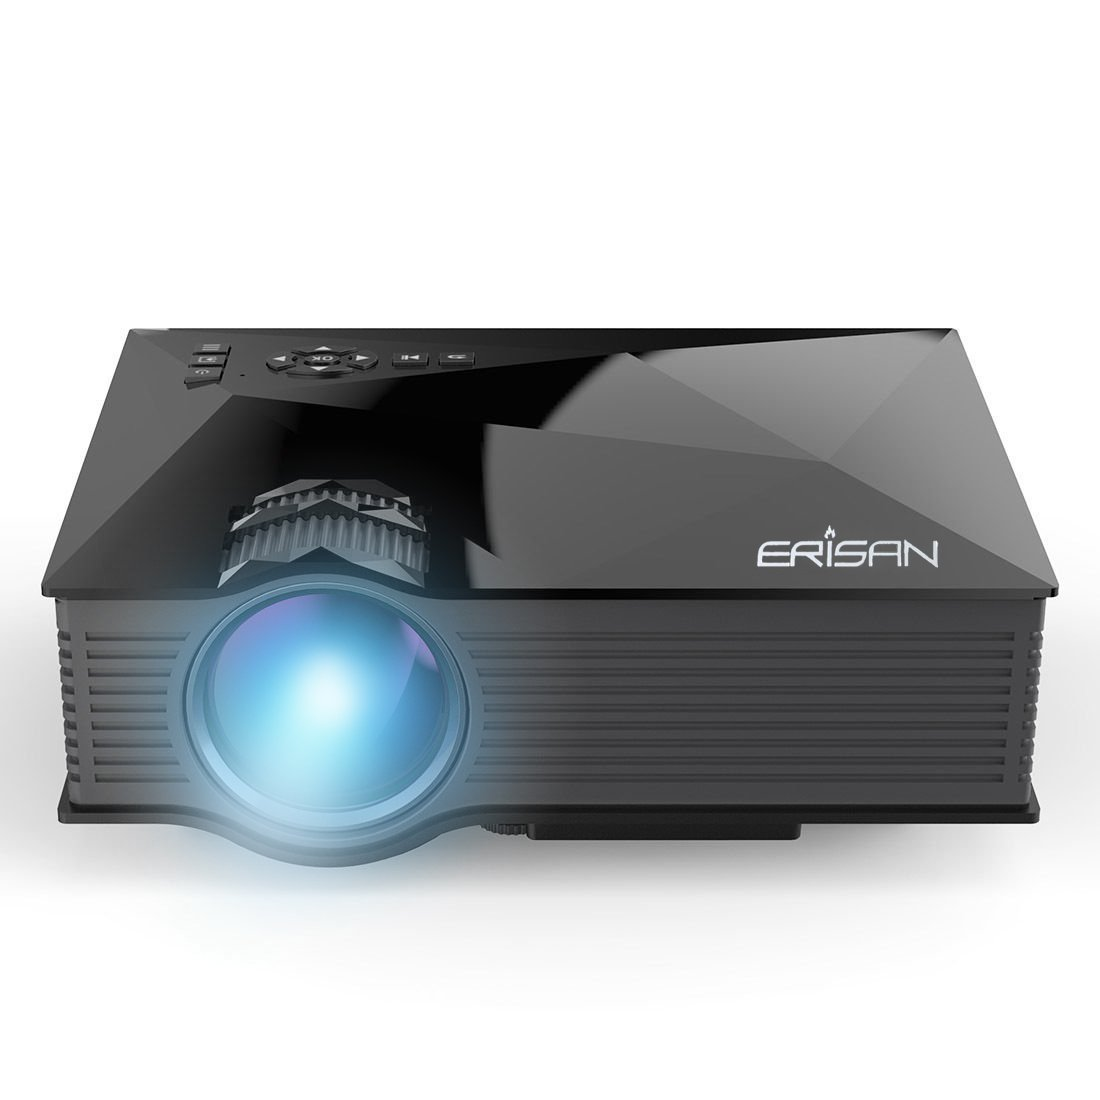 "ERISAN Updated ER46 1200 Lumens WiFi Wireless Full Color 130"" Image Pro Mini Portable LCD LED Home Theater Cinema Game Projector - Support HD 1080P Video /IP/IR/USB/SD/HDMI/VGA"